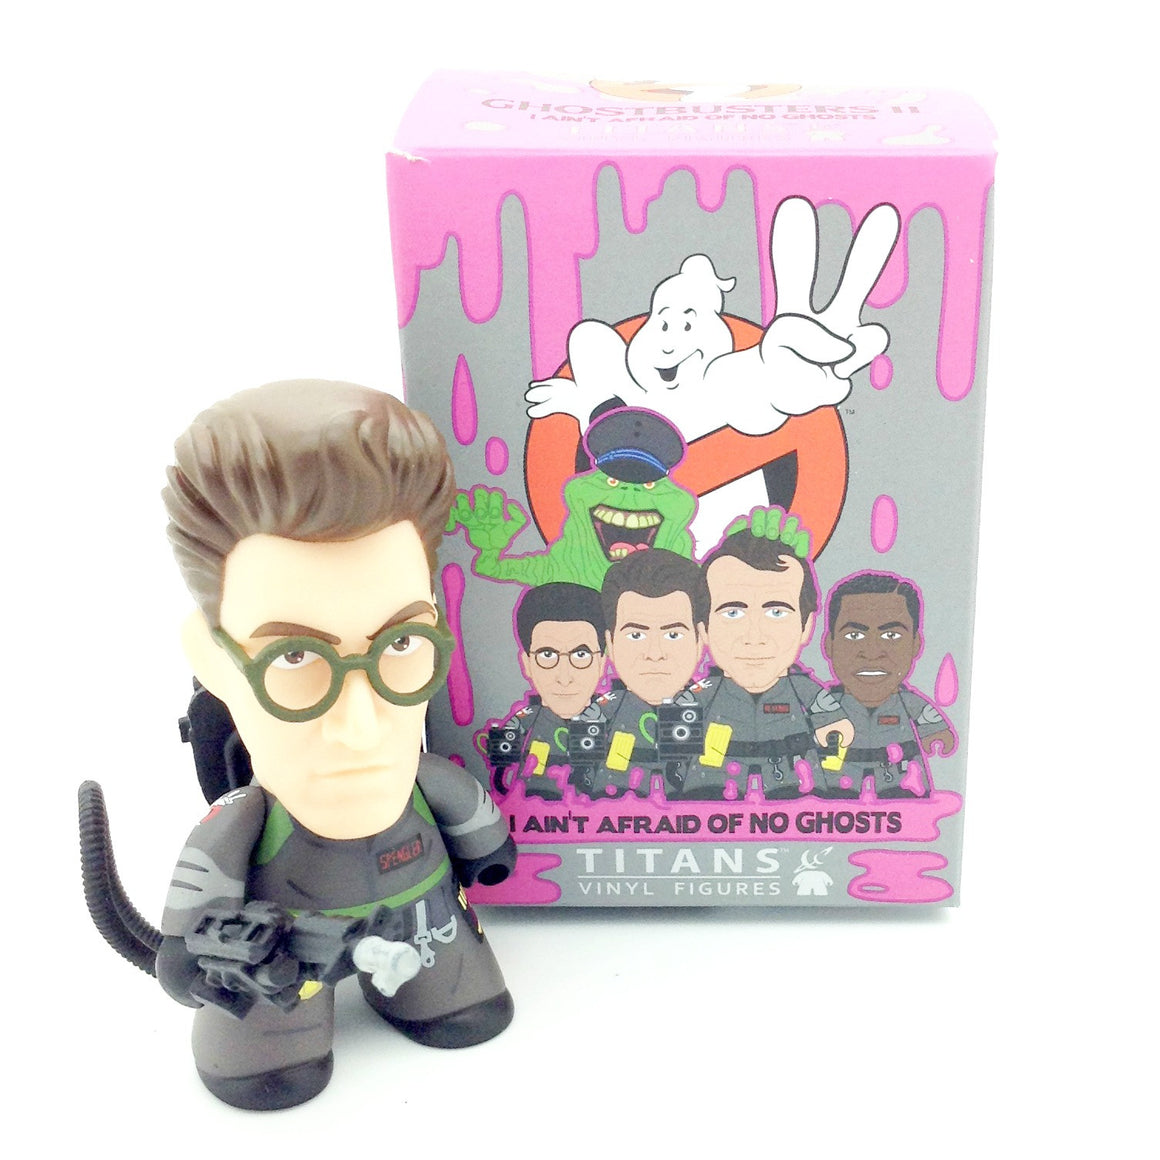 Ghostbusters 2 I Ain't Afraid Of No Ghosts Blind Box Collection - Spengler